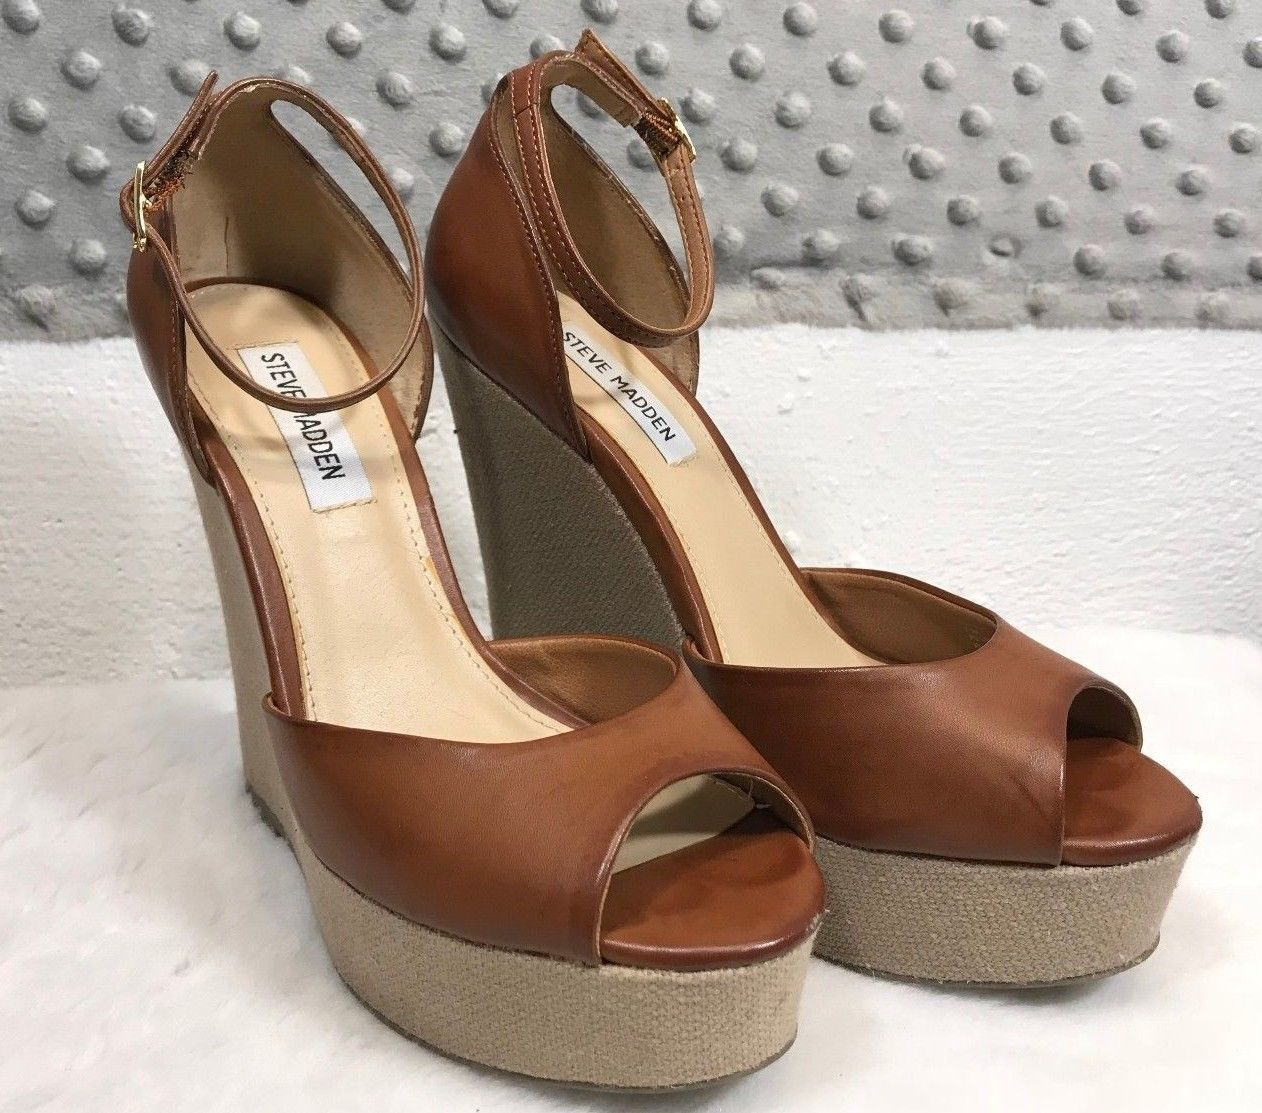 REDHEAD WOMENS SZ 7.5 SANDALS SHOES WEDGE HEELS STRAPPY BROWN RUBBER SOLE    A2